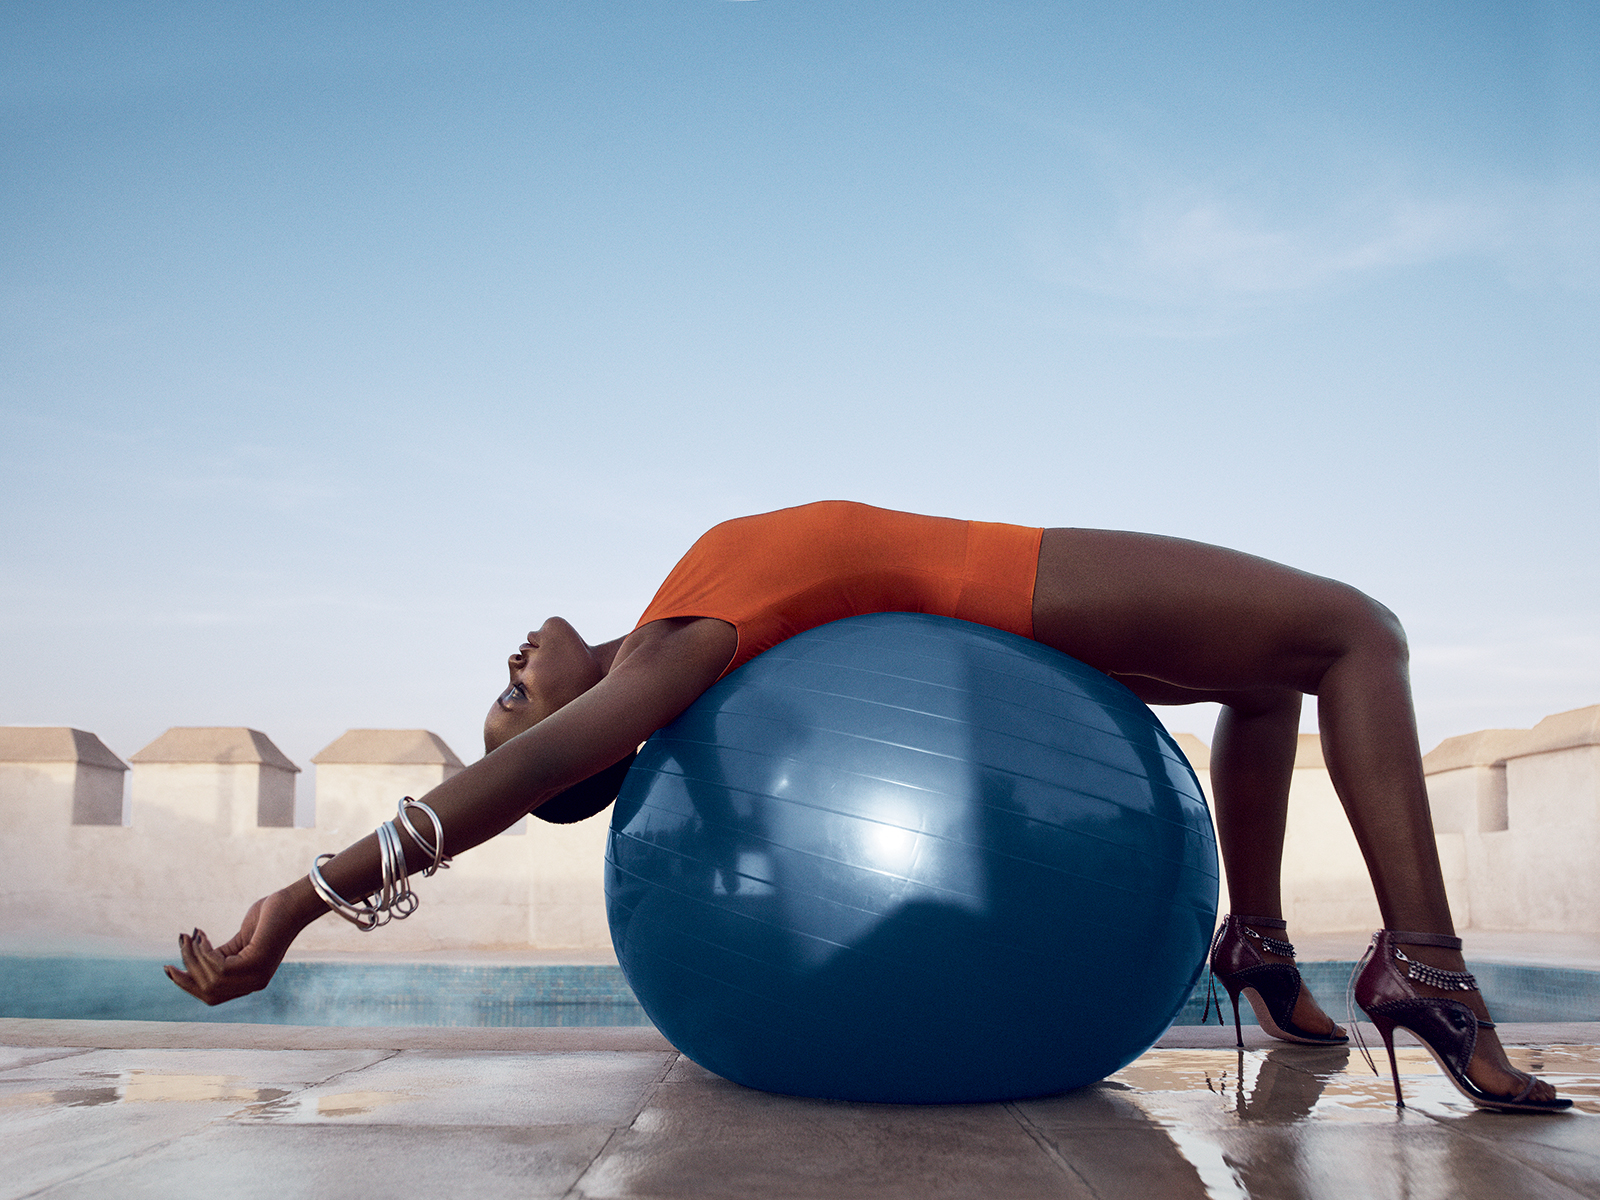 BODY AND SOUL: Nyong'o at a private dipping pool atop one of Ksar Char-Bagh's towers, which also boasts breathtaking views of the Atlas Mountains. Givenchy by Riccardo Tisci marigold bodysuit. Spinelli Kilcollin linked bangles. Georg Jensen double bangle. | CREDIT: Vogue.com